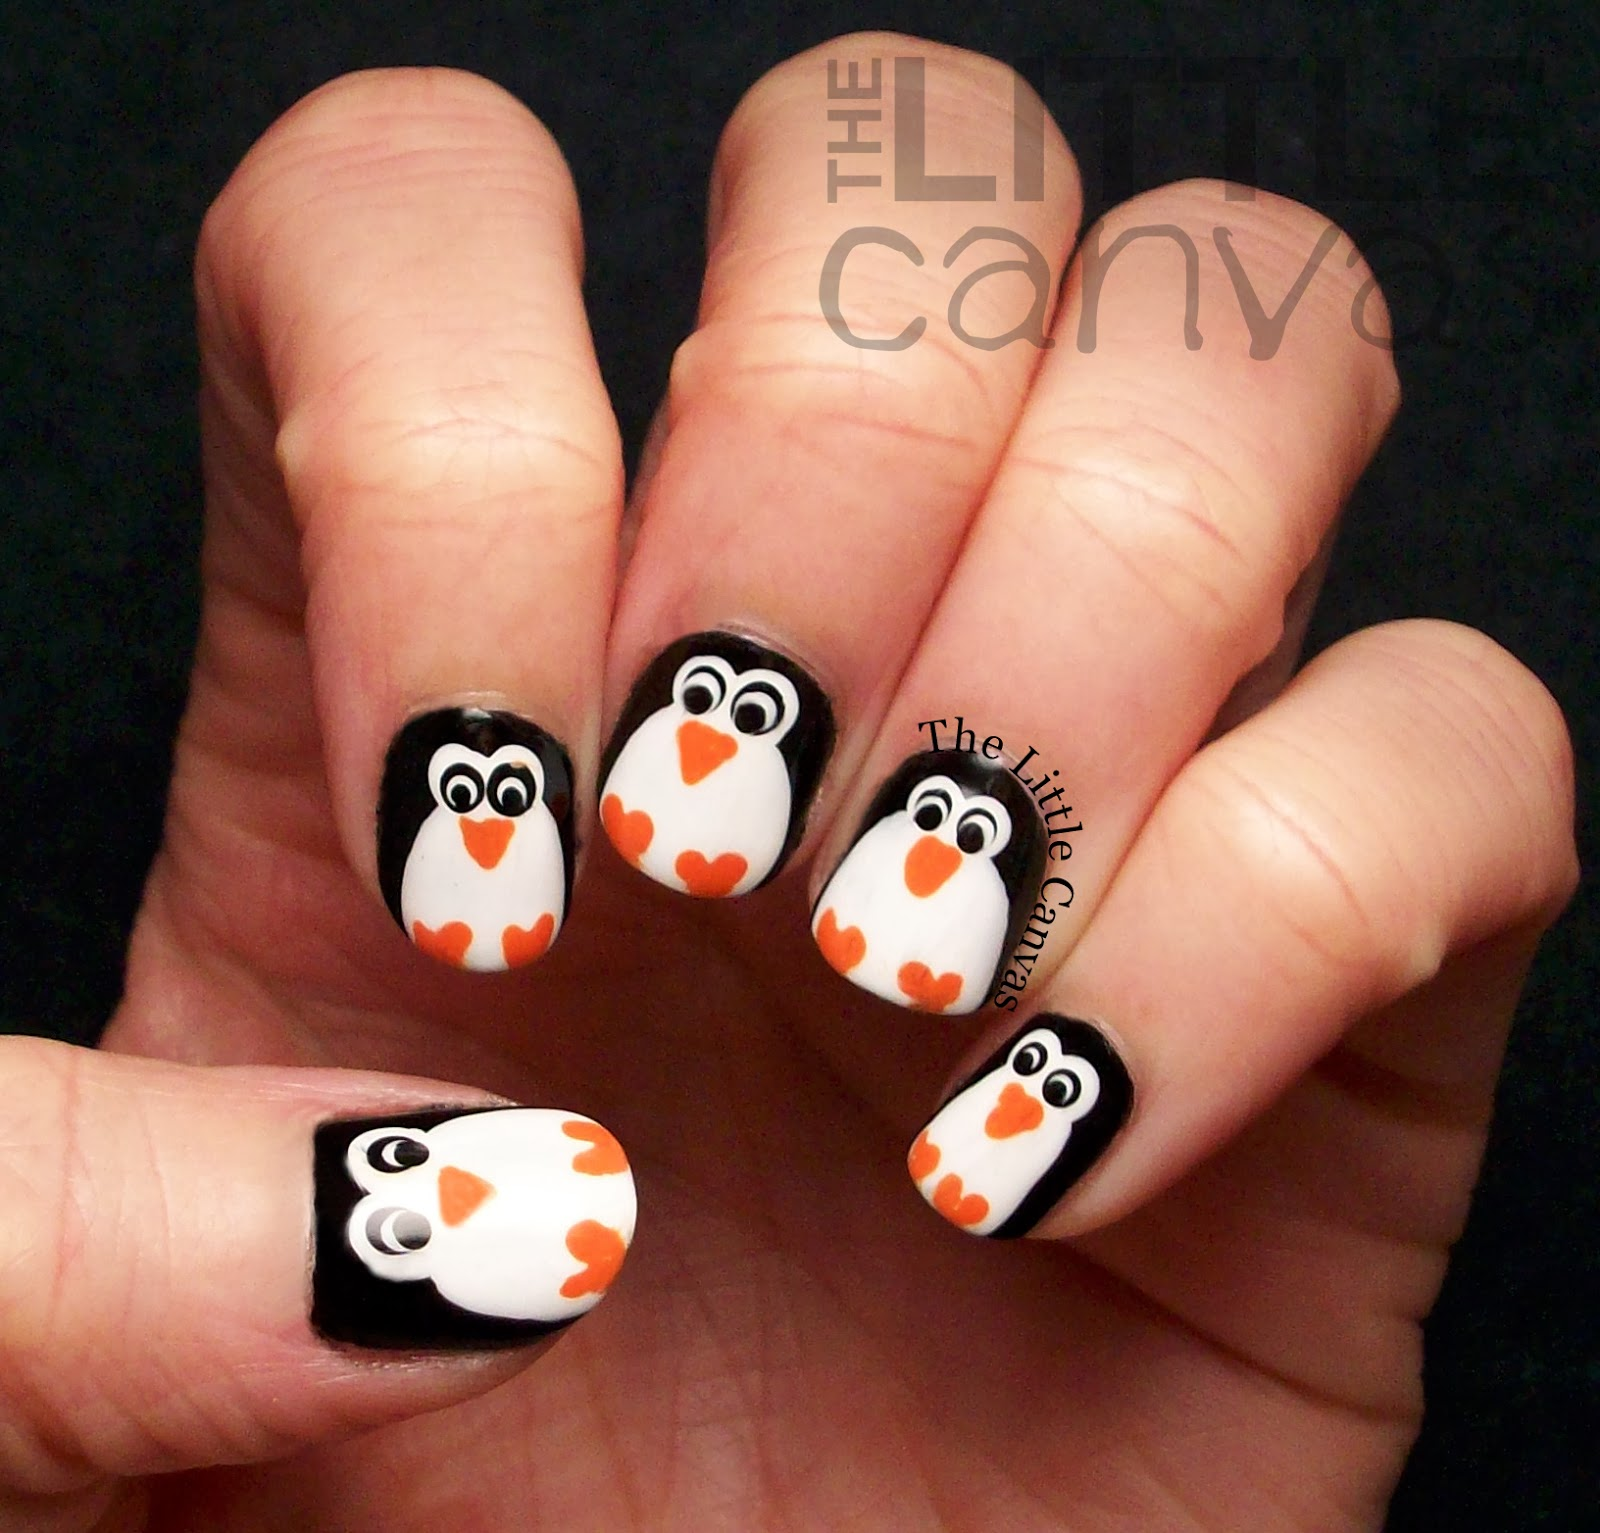 The Little Canvas: Penguin Nail Art